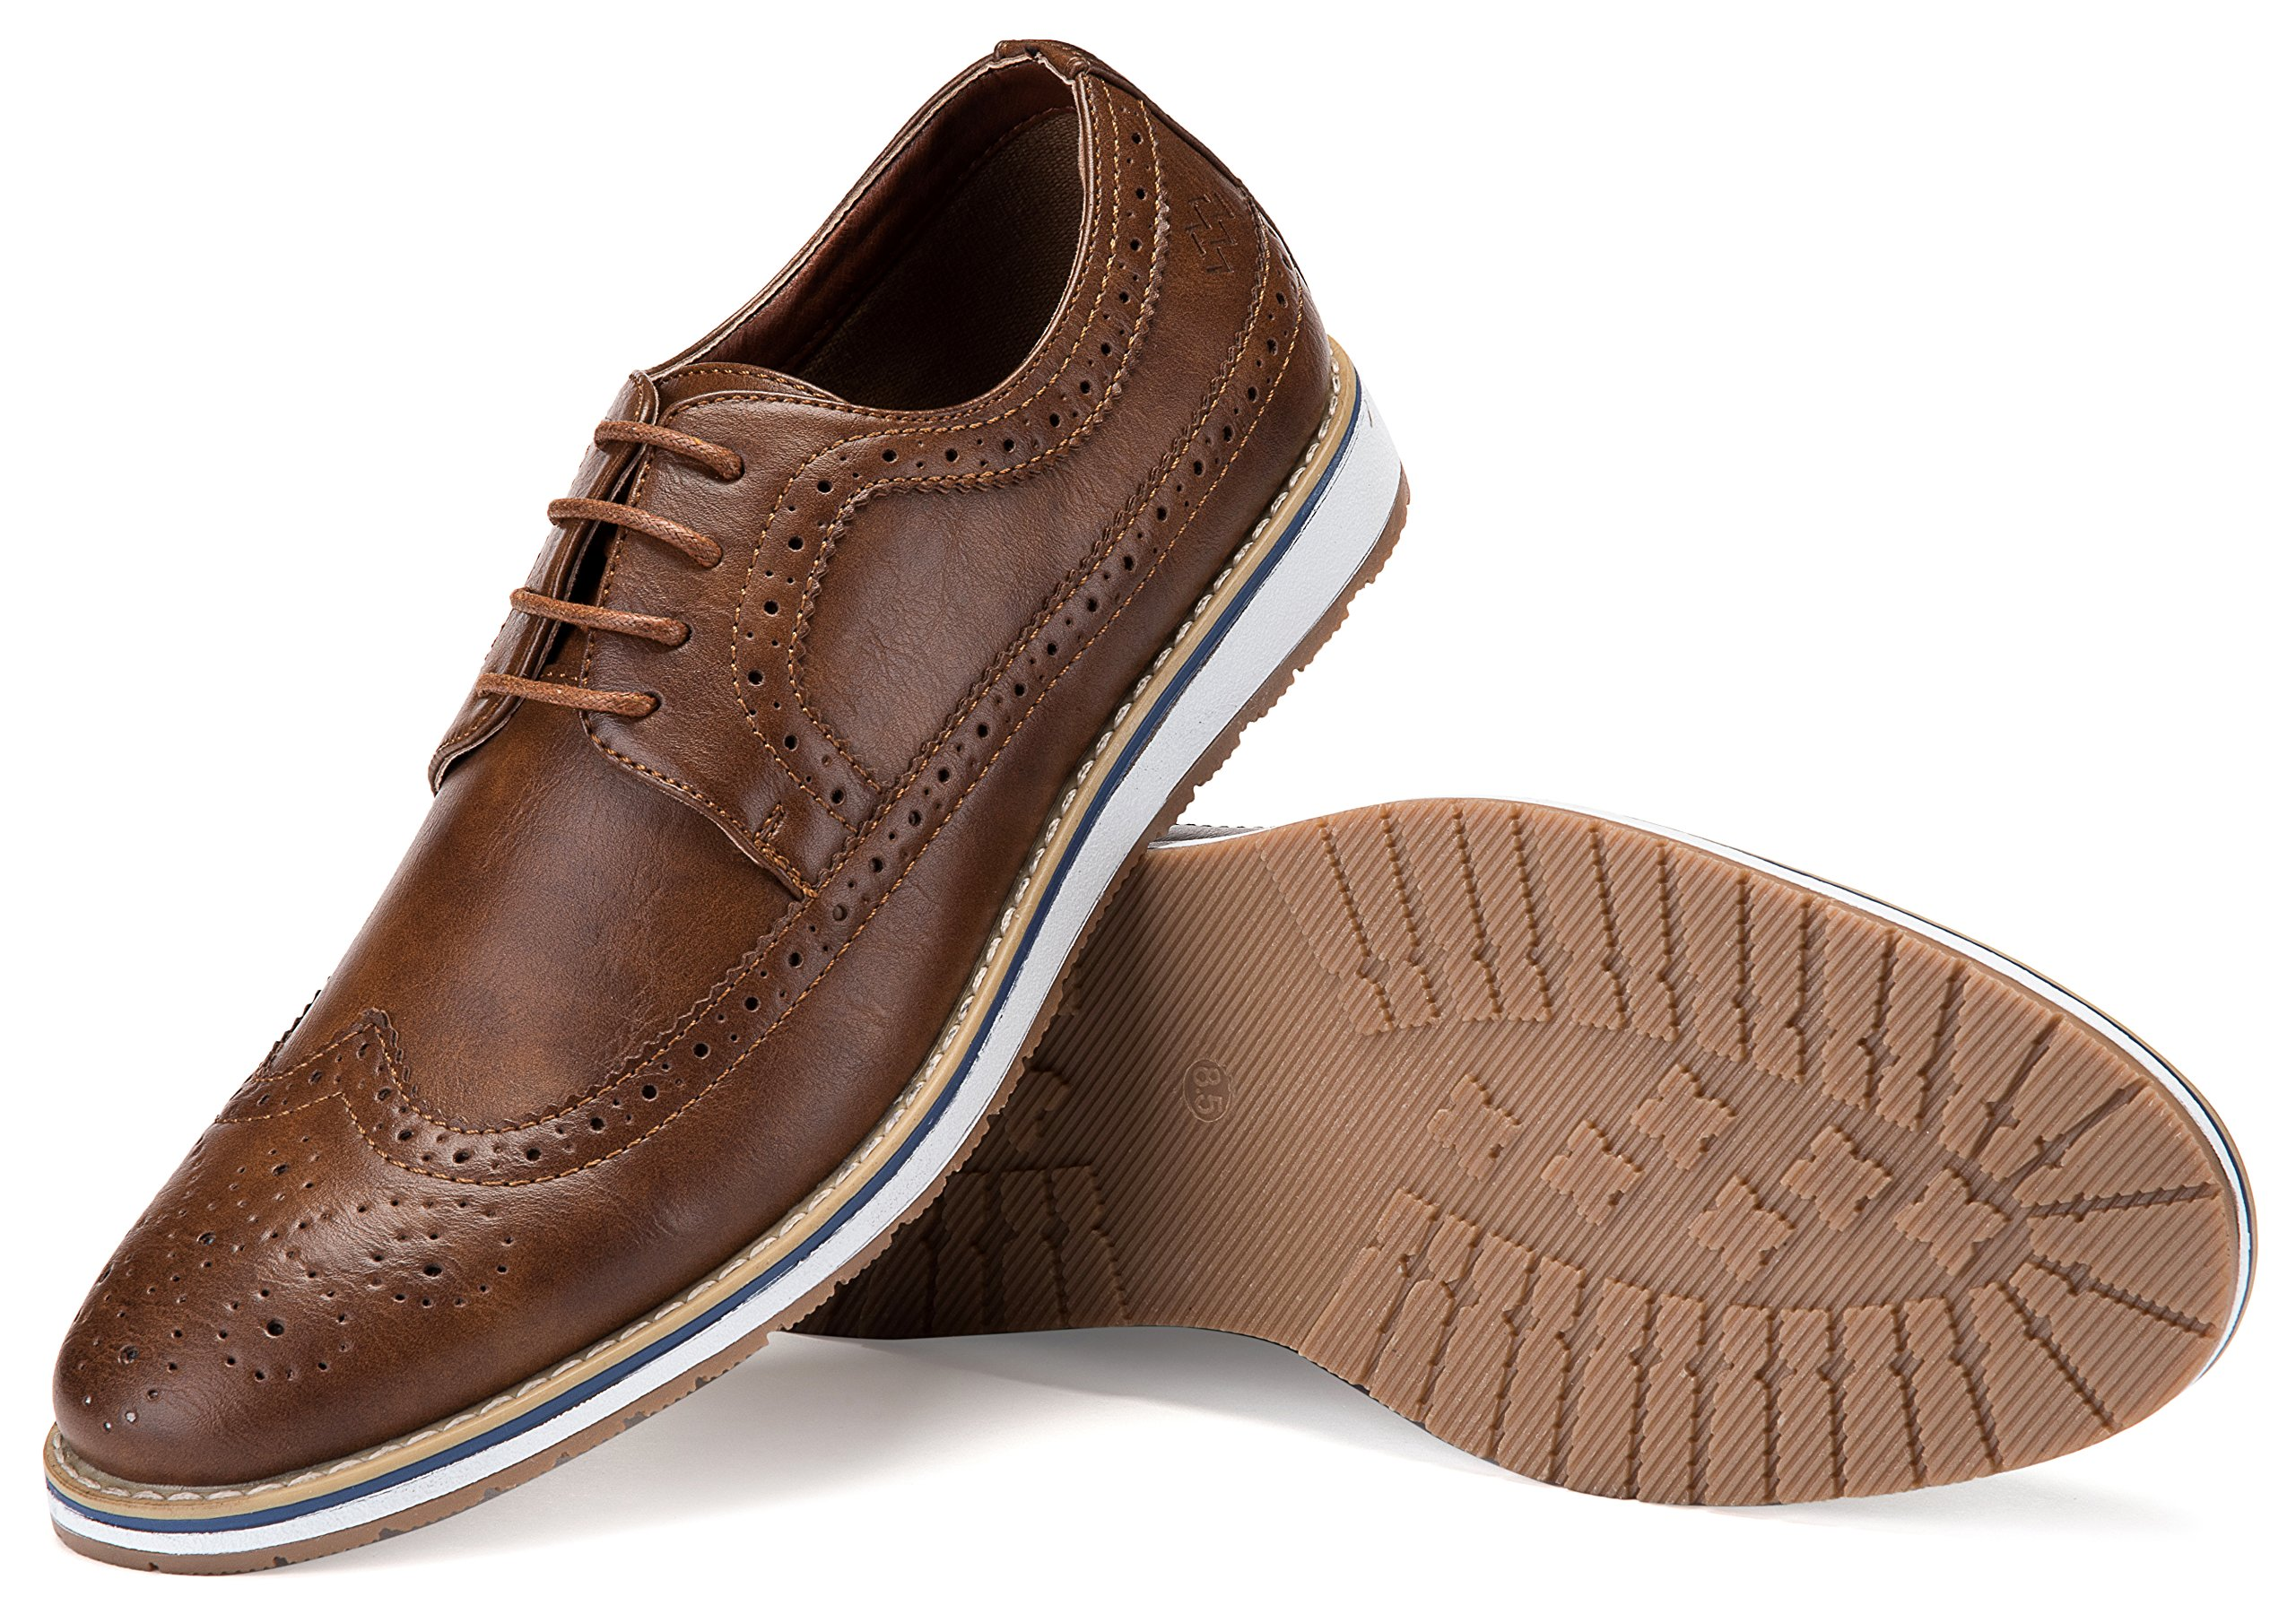 Mio Marino Mens Casual Shoes - Wingtip Oxford - Dress Shoes for Men, in A Shoe Bag